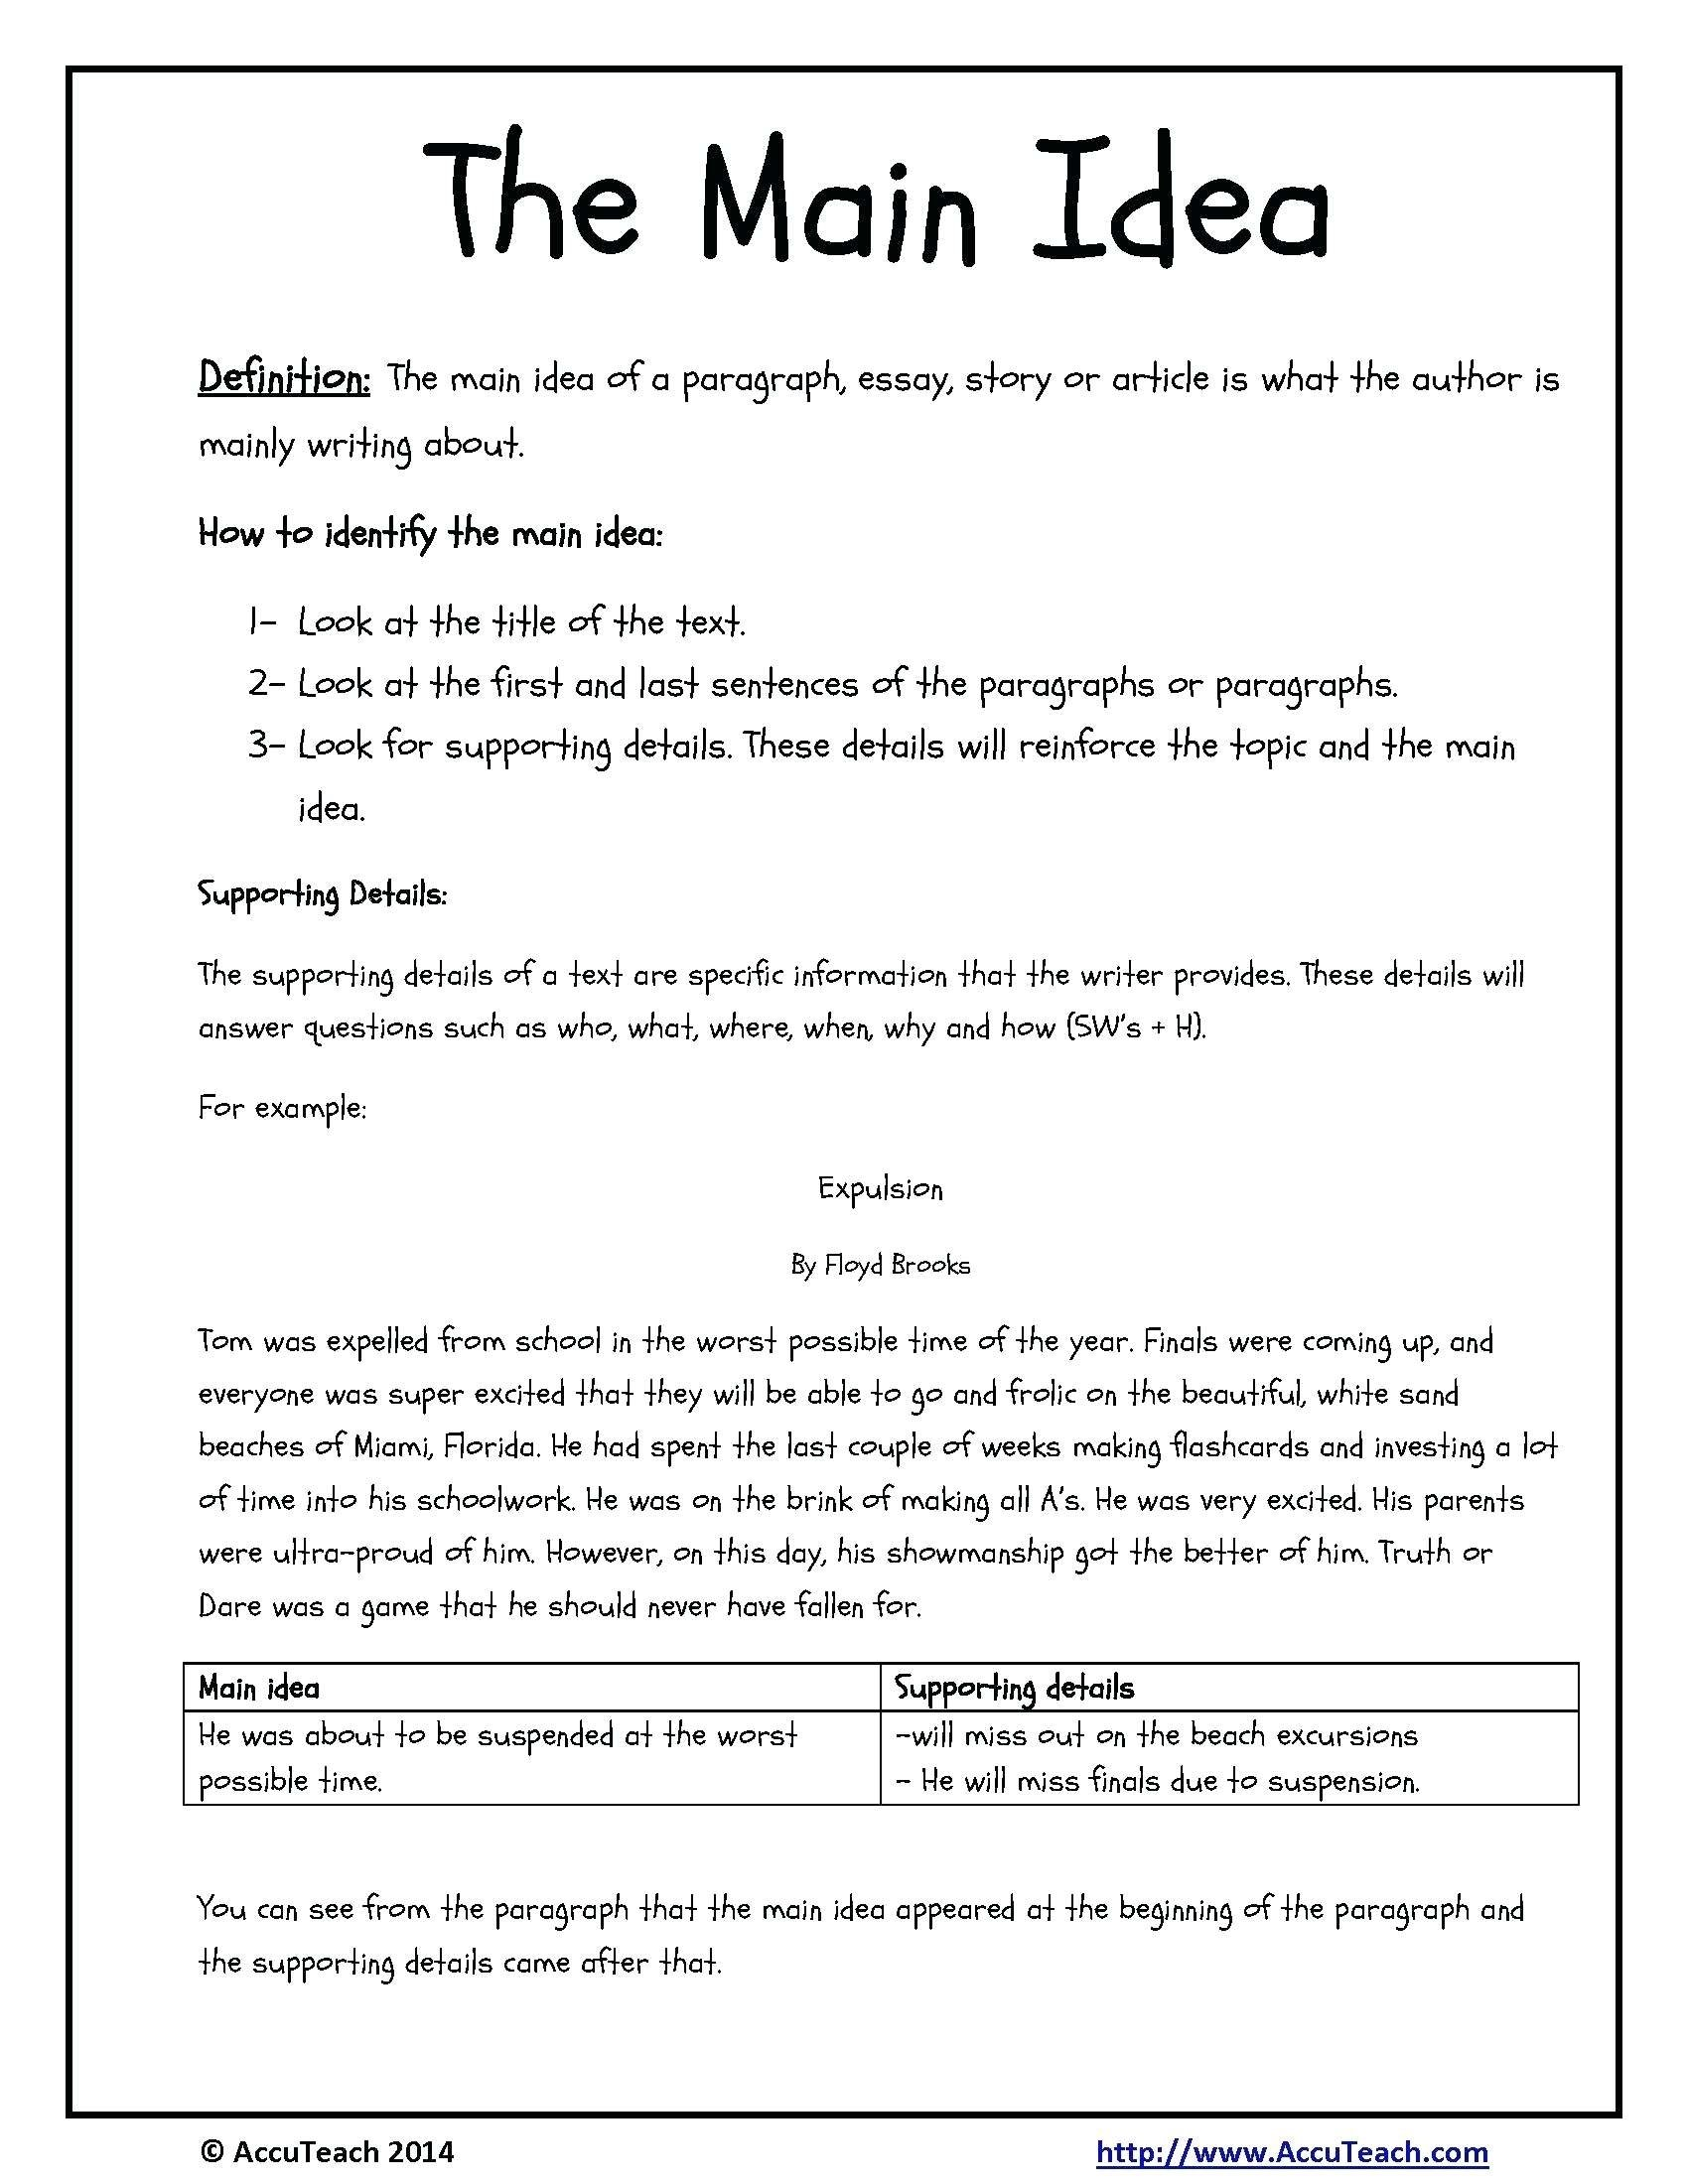 10 Most Popular Main Idea Supporting Details Worksheet worksheet main idea worksheet 4 thedanks worksheet for everyone 2 2021